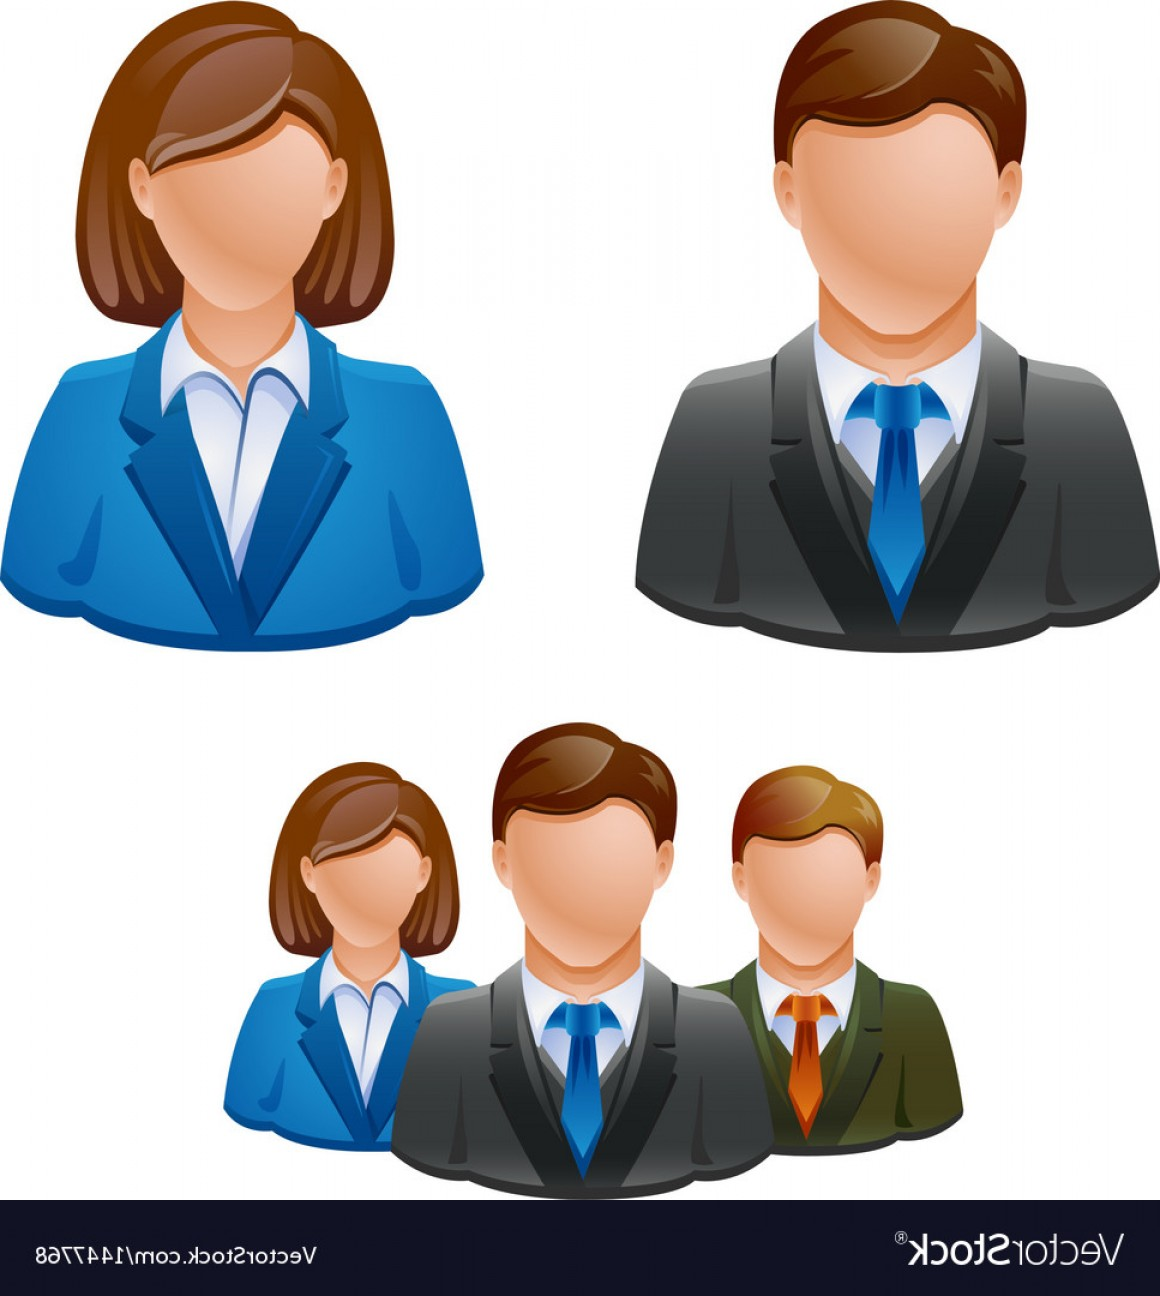 Free Vector Business People Icon: Business People Avatar People Icon Vector